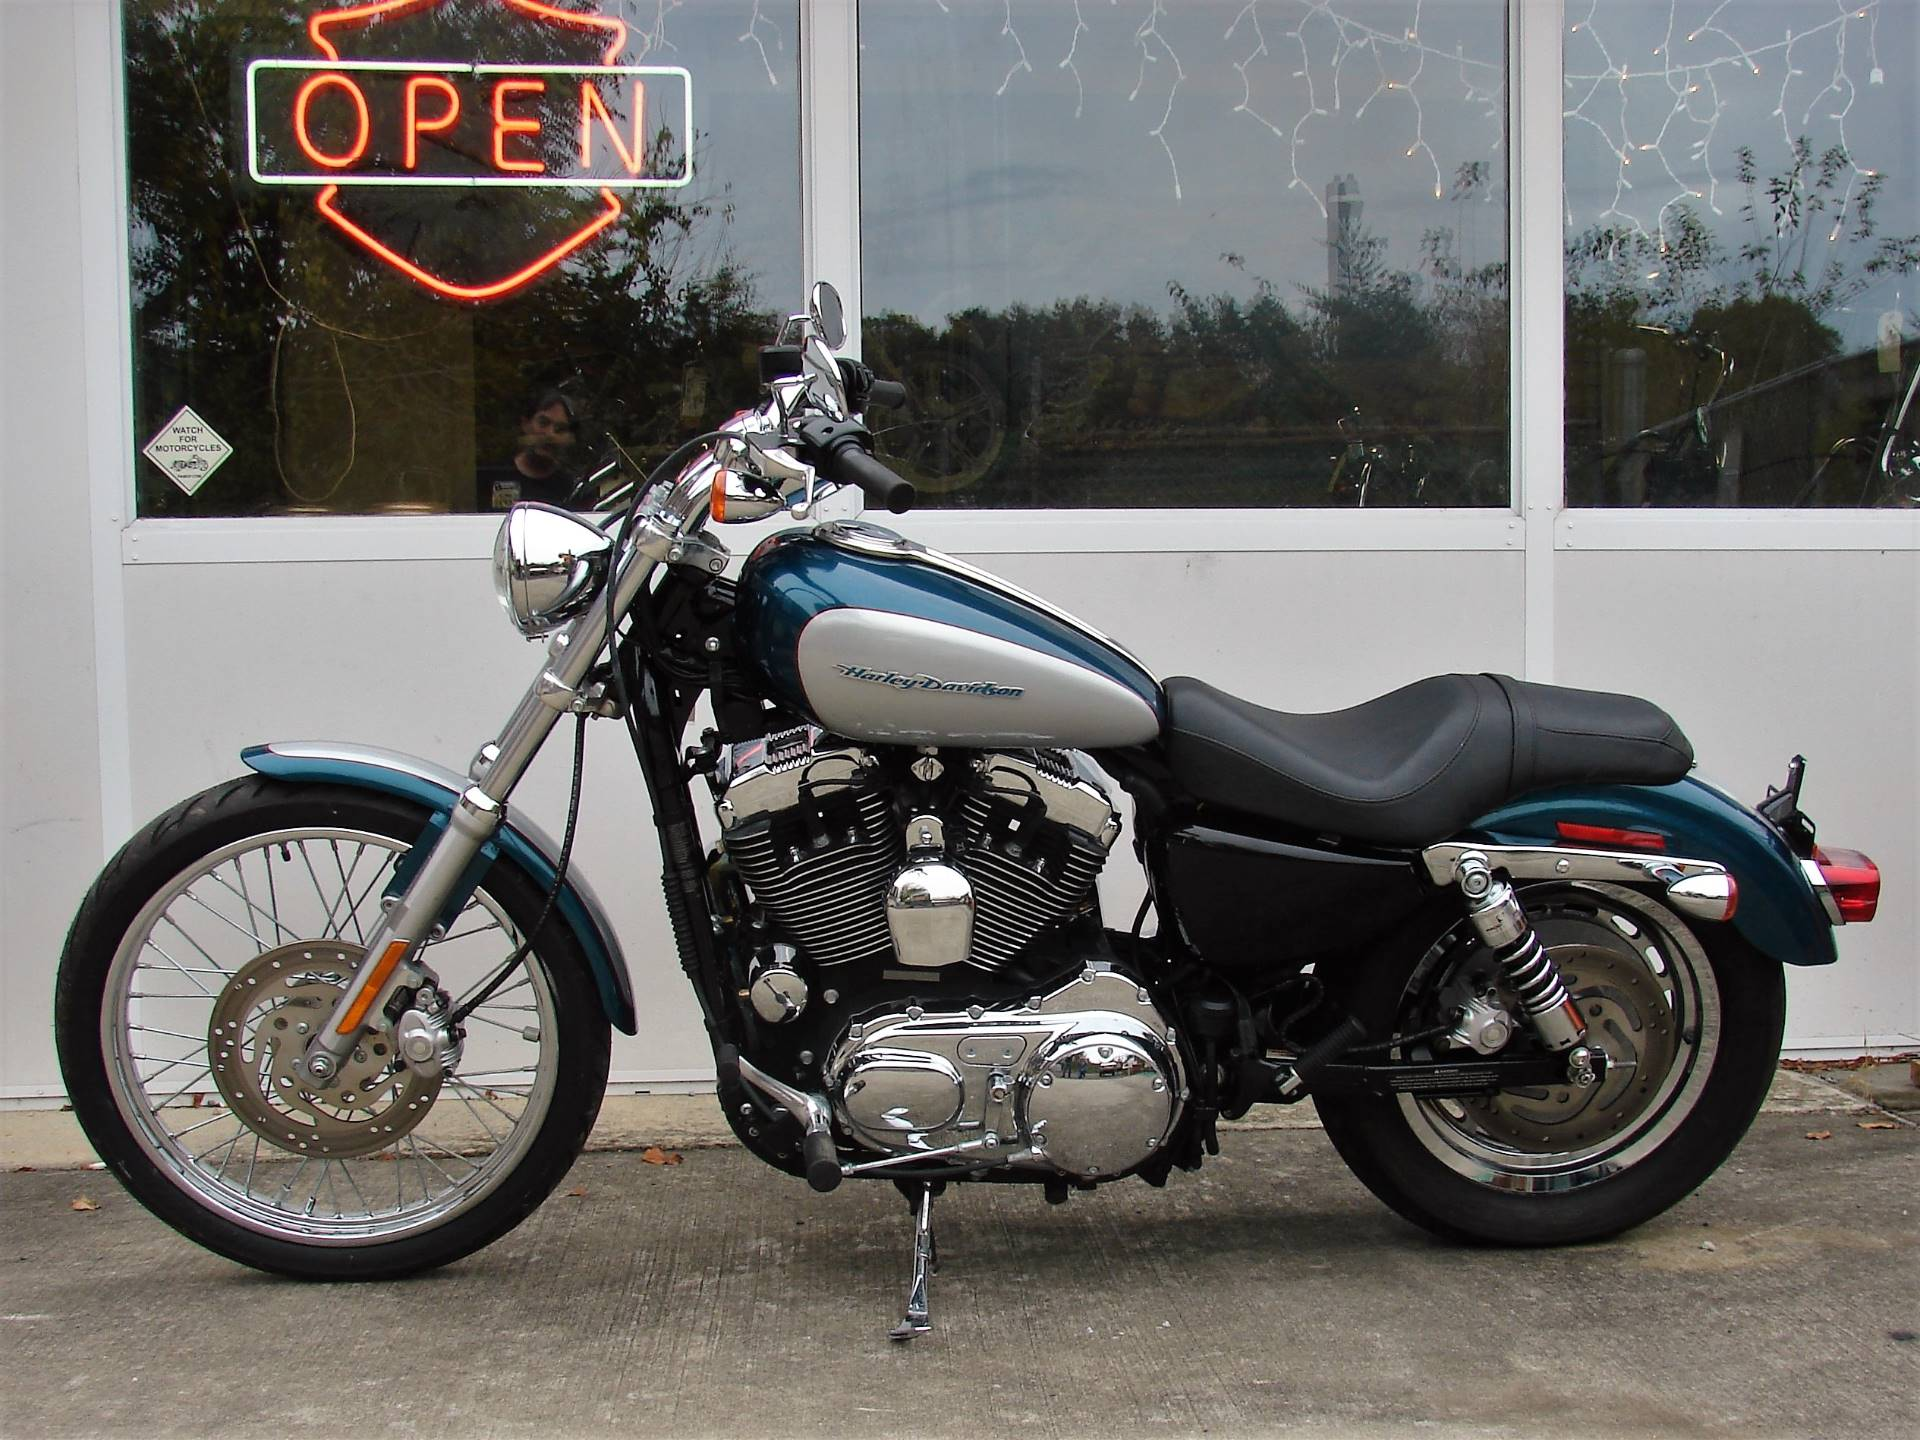 2004 Harley-Davidson Sportster XL 1200 Custom in Williamstown, New Jersey - Photo 11